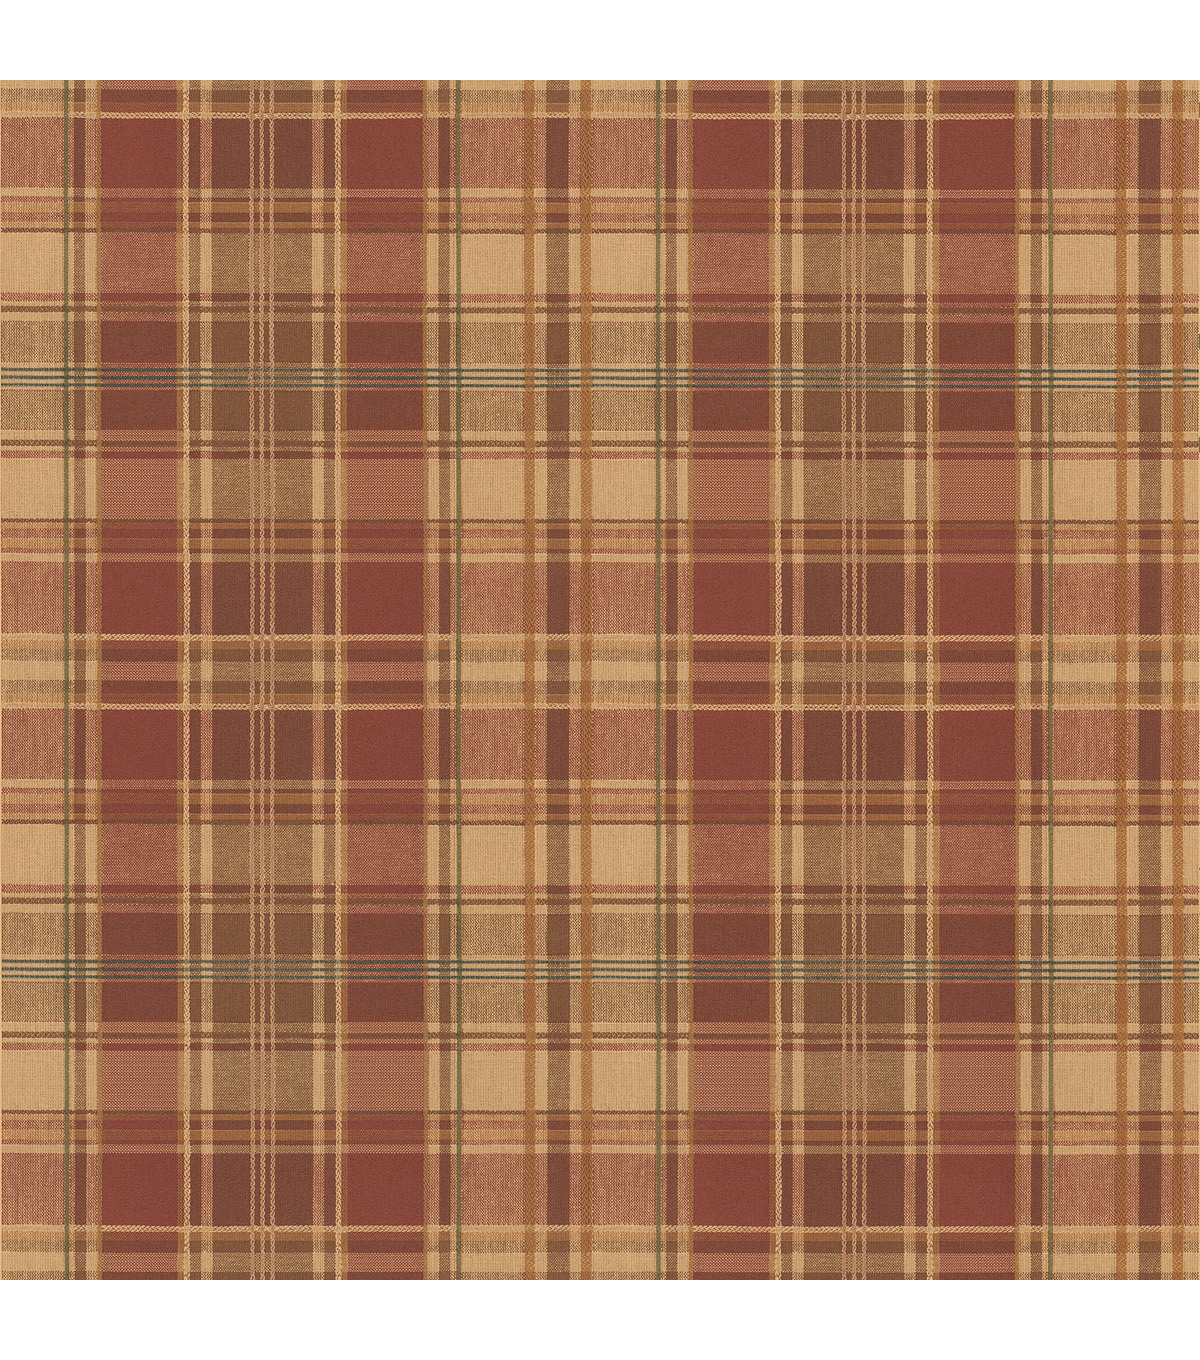 Tartan Wool Brick Plaid Wallpaper Sample